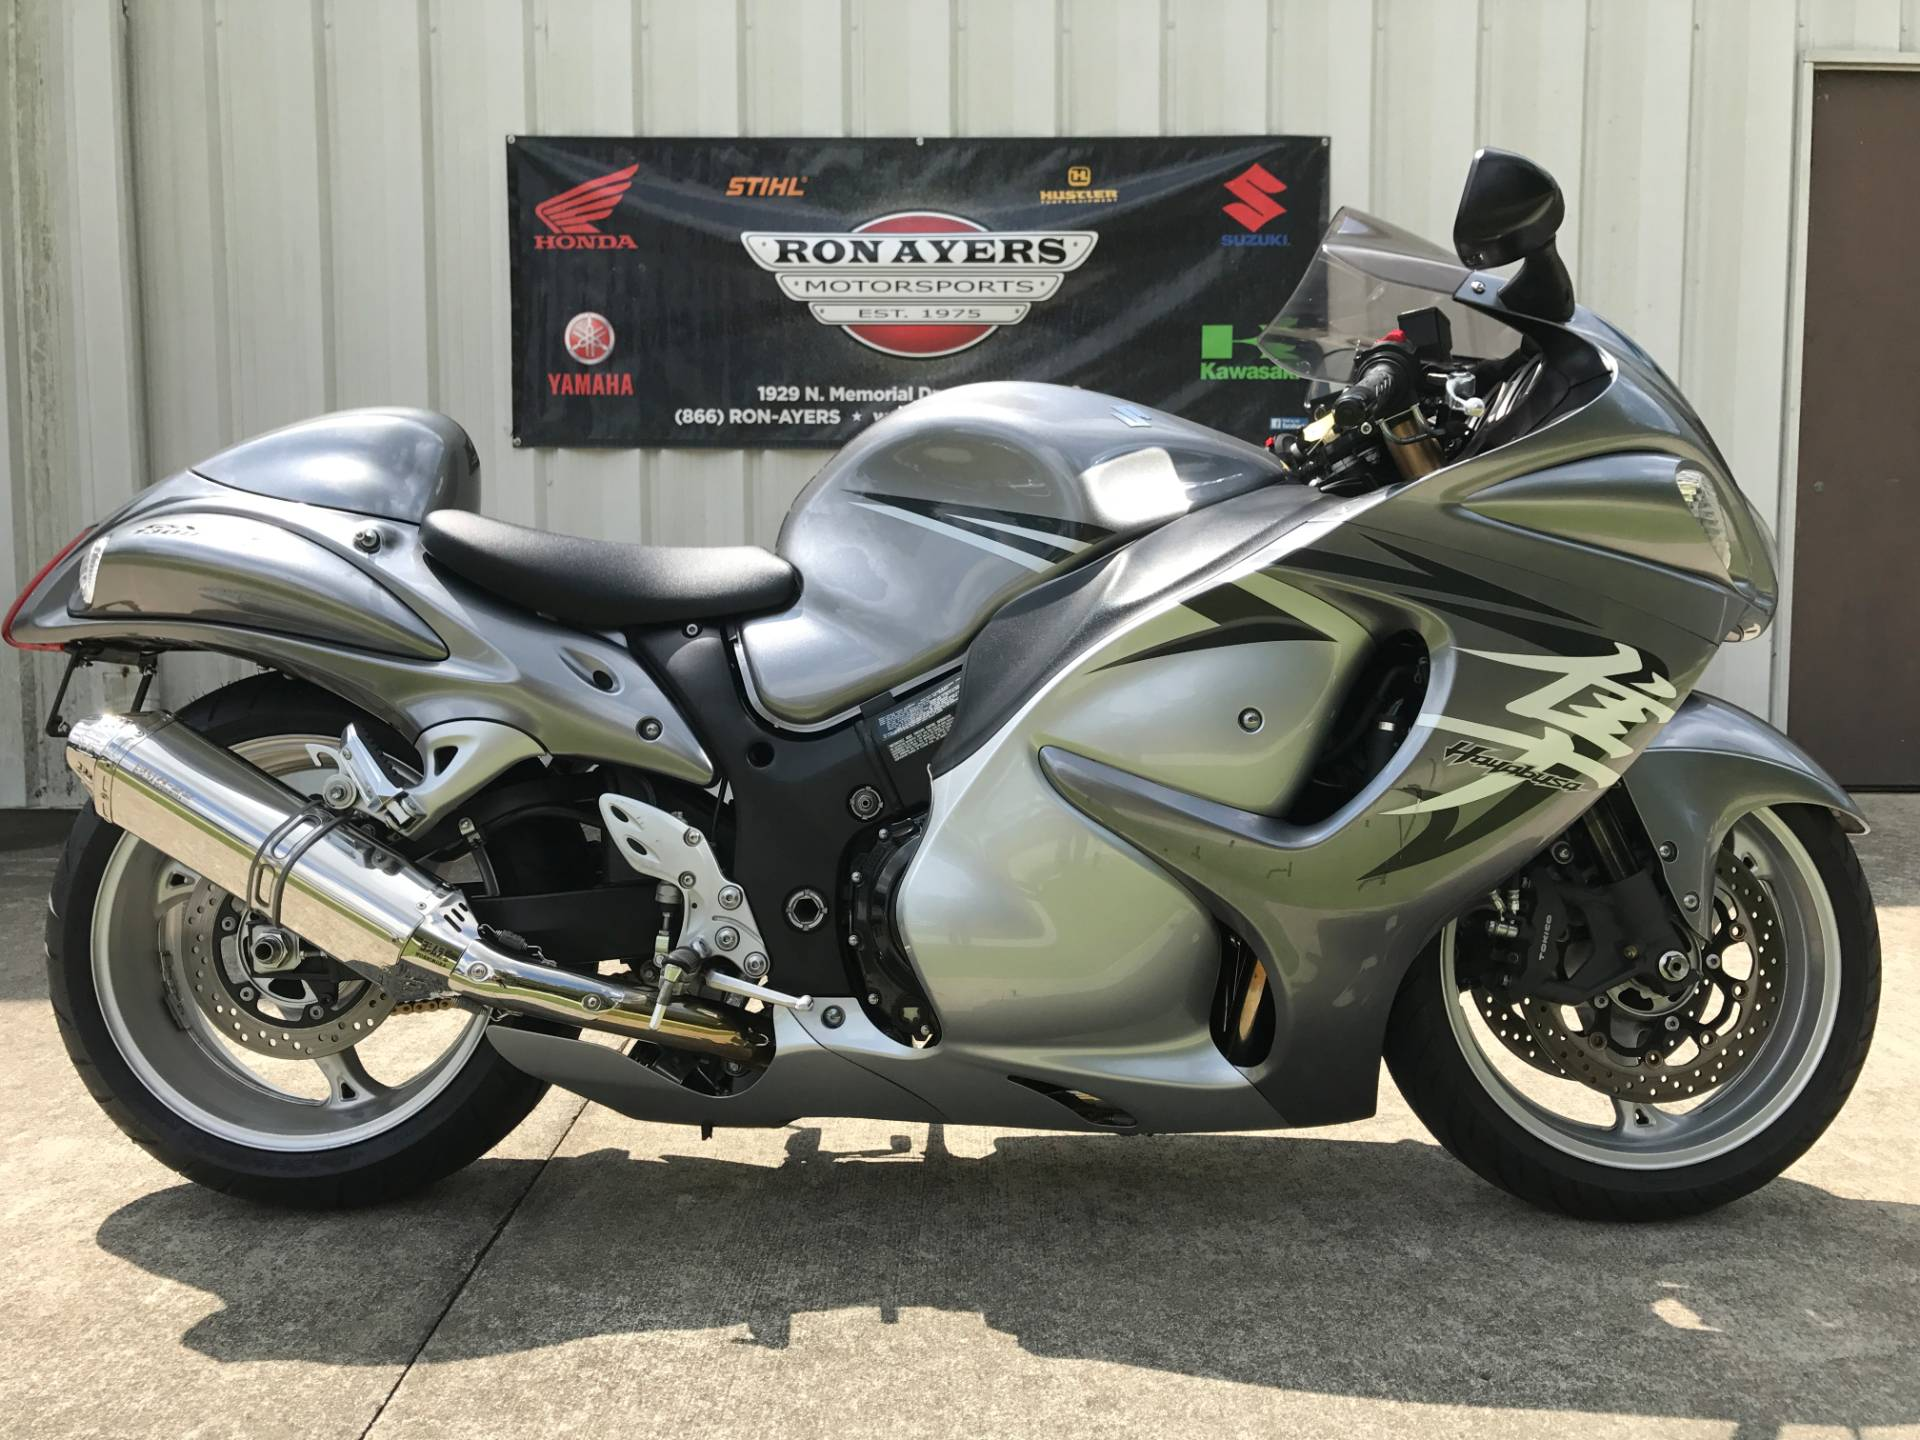 2009 Suzuki Hayabusa for sale 59827